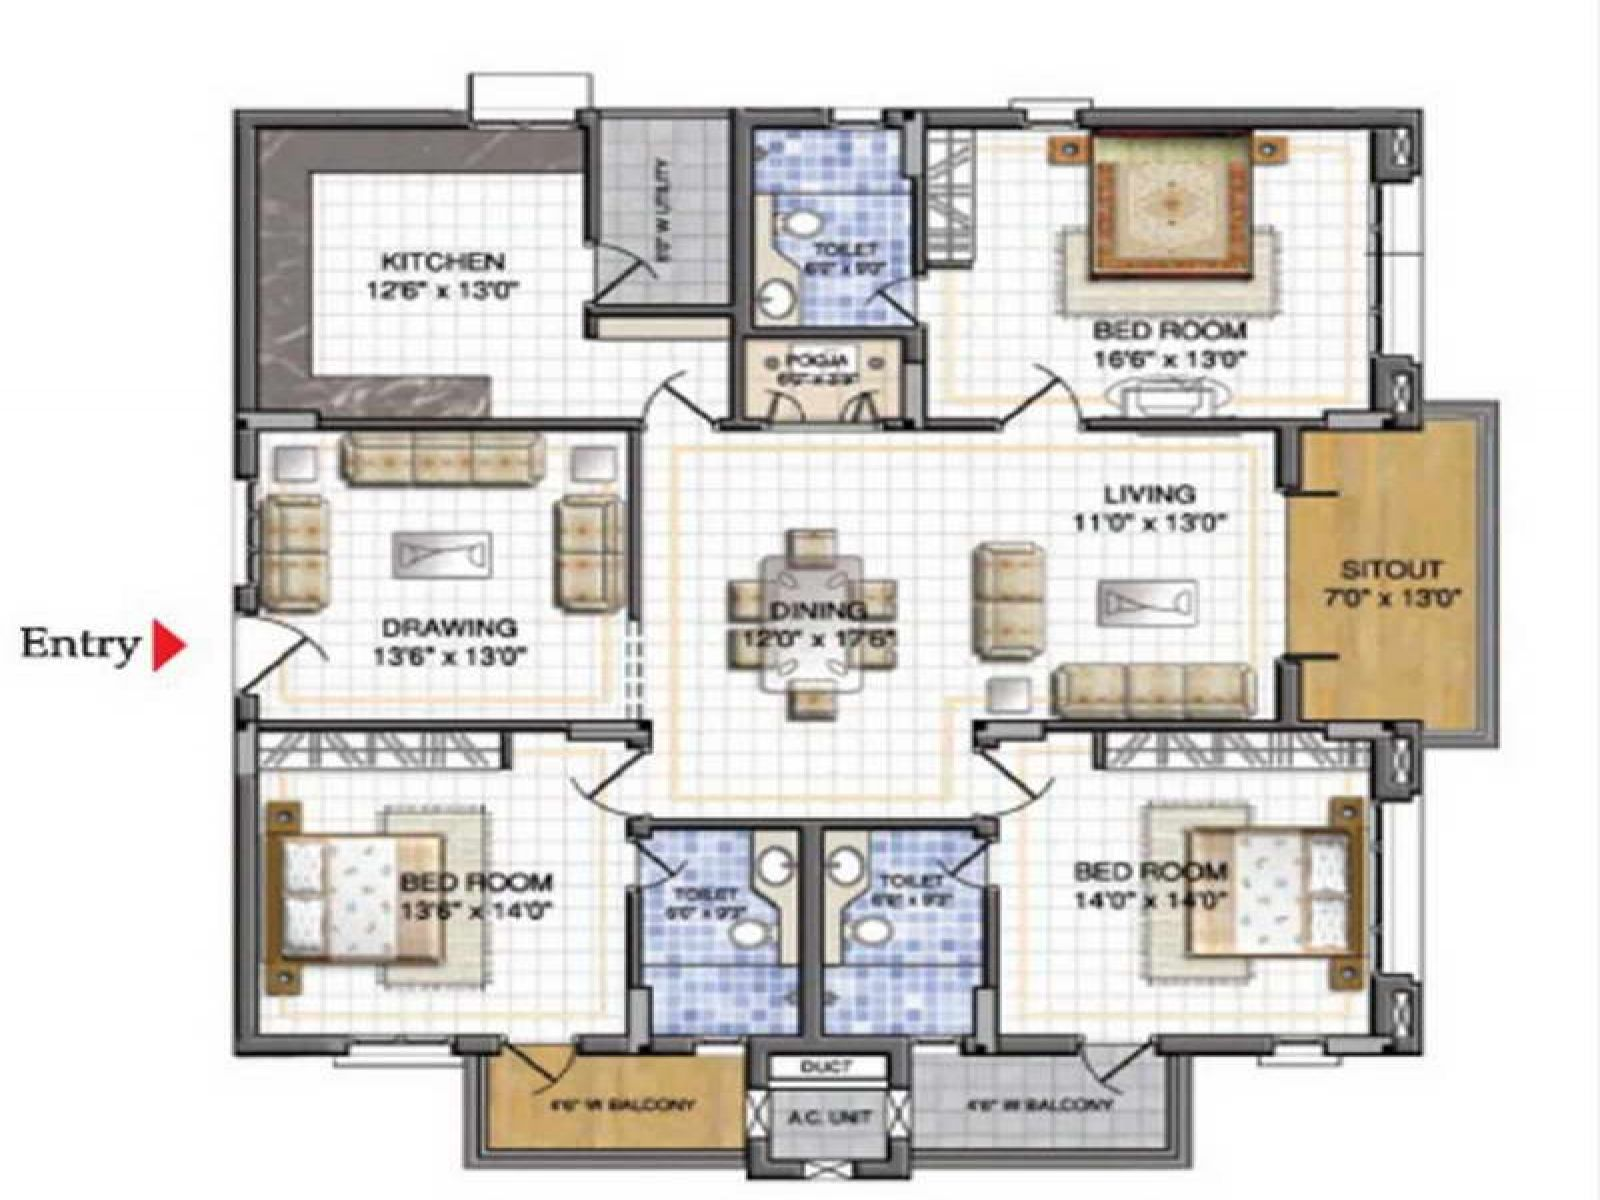 Sweet home 3d plans google search house designs for Plan 3d online home design free